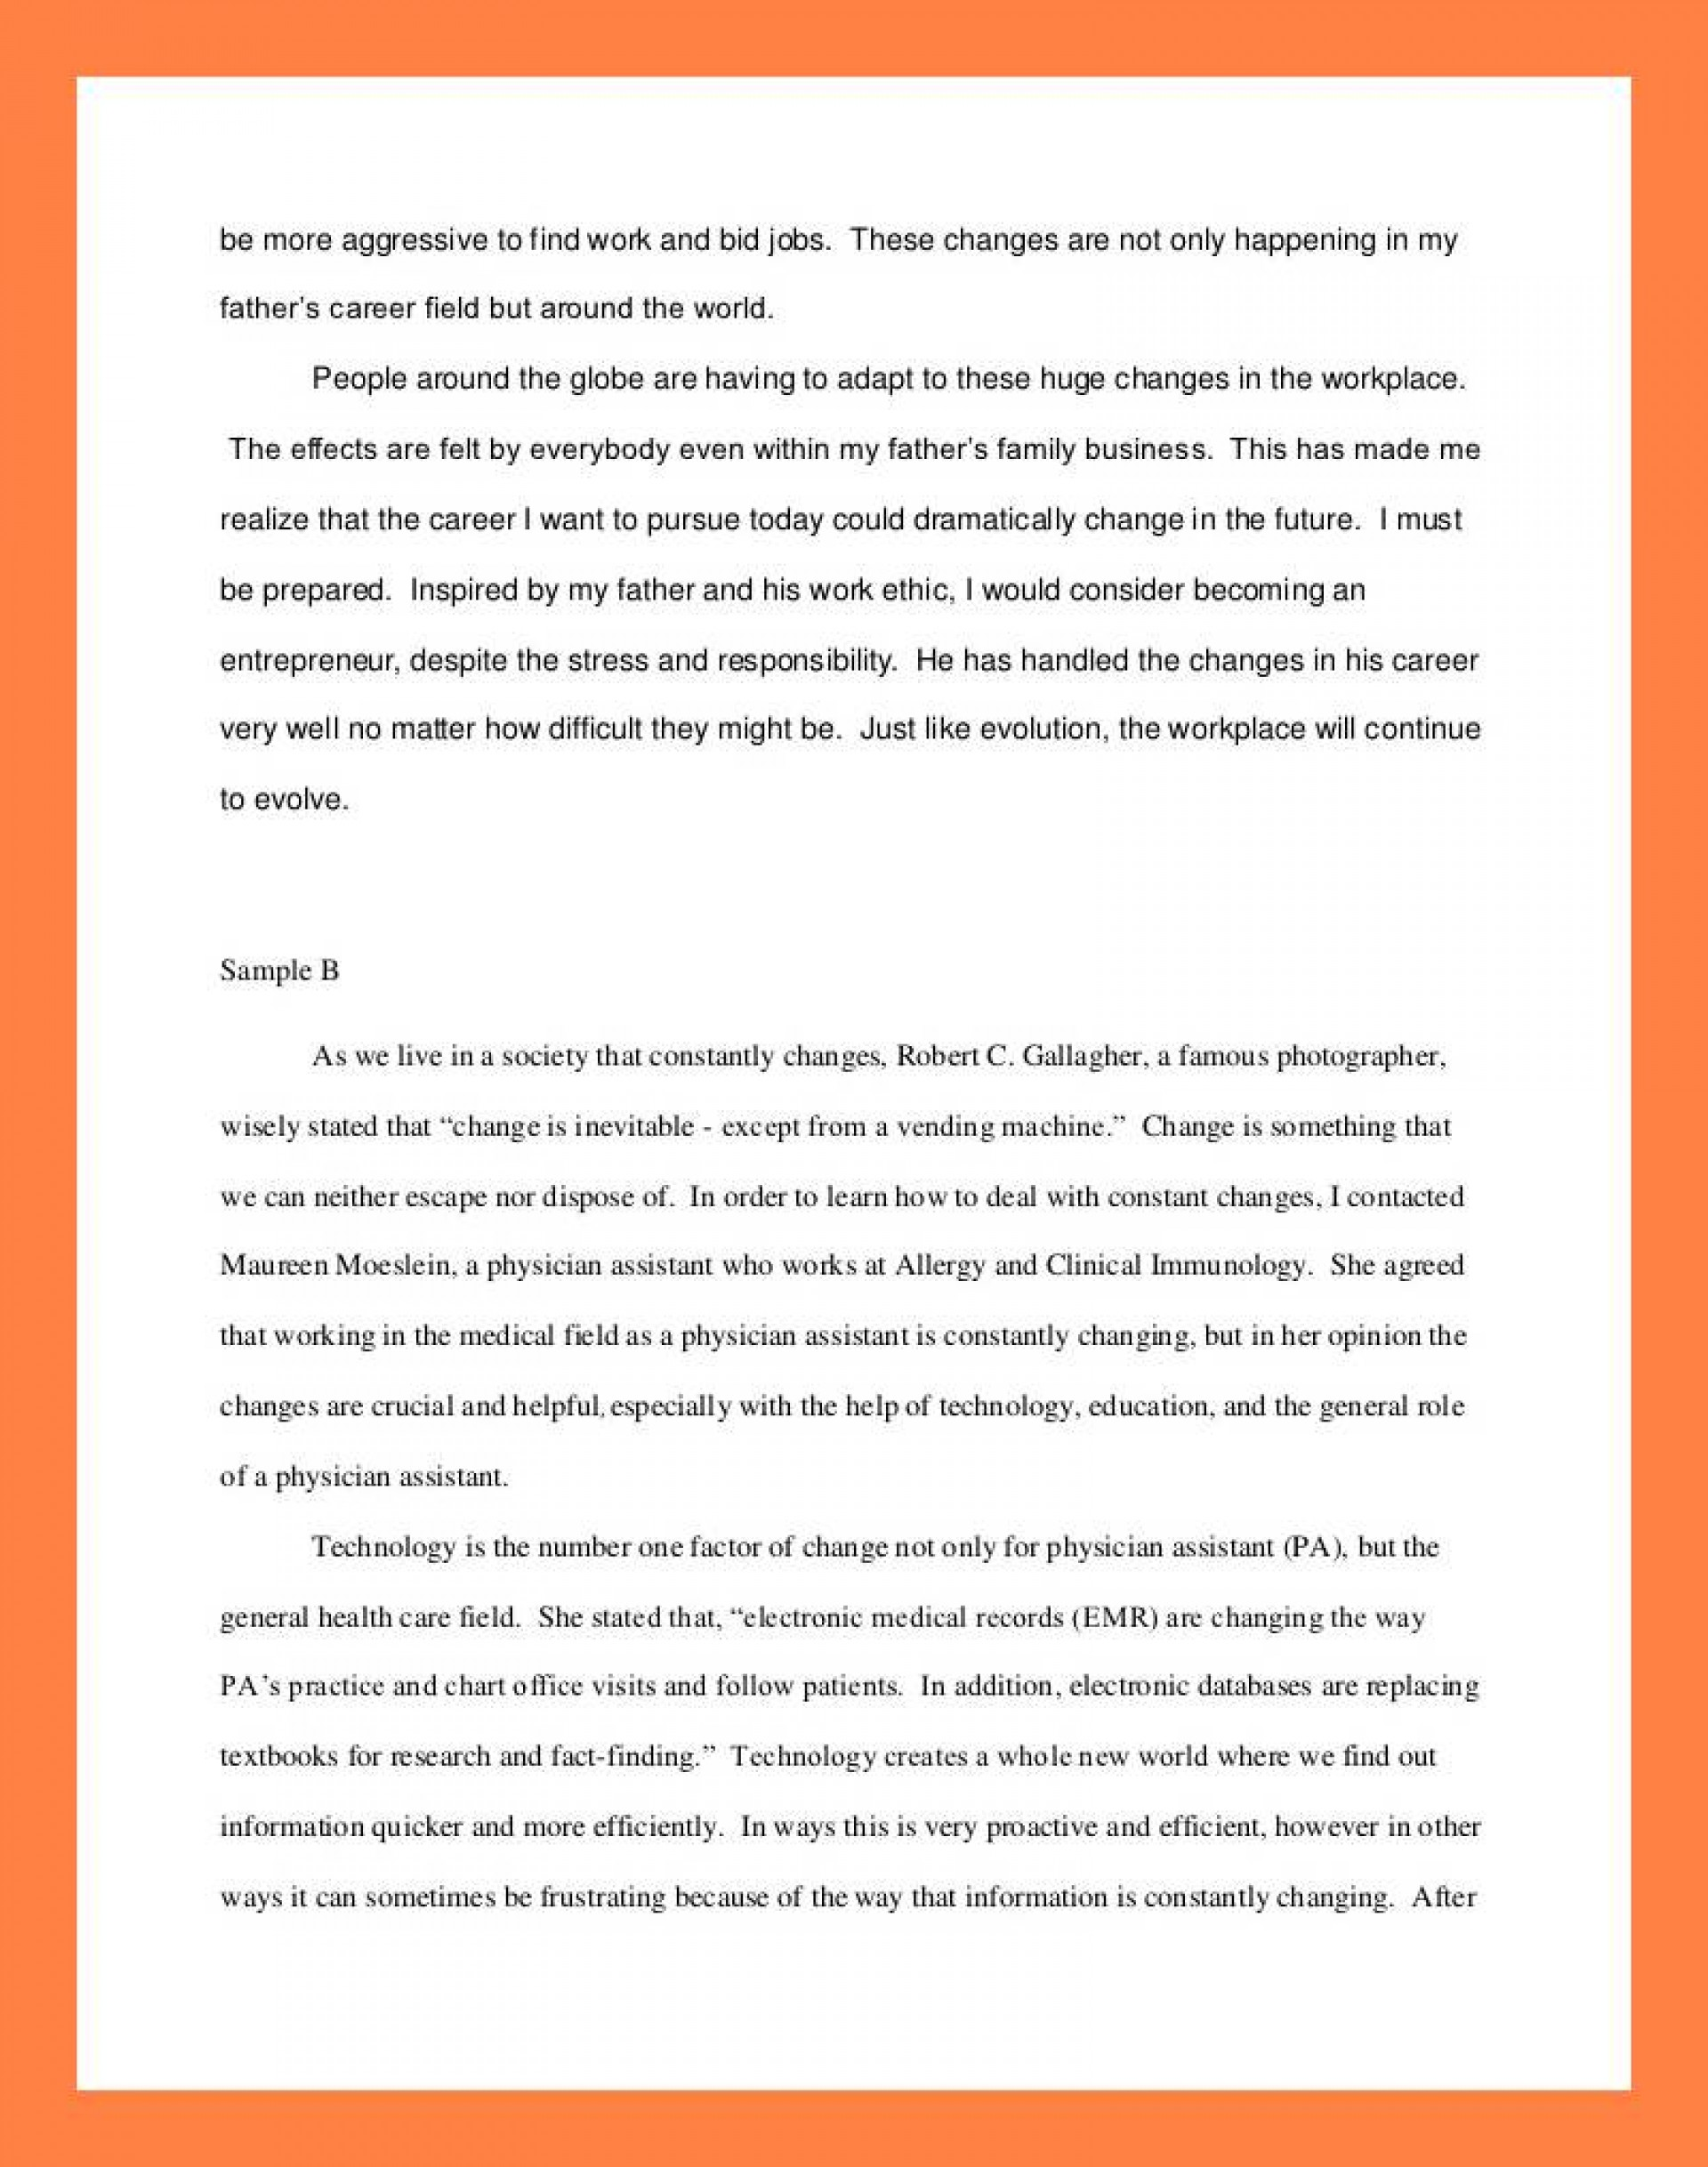 012 Interview Essay Example Examples Of Student Reflections Shocking Paper Format Apa Mla 1920